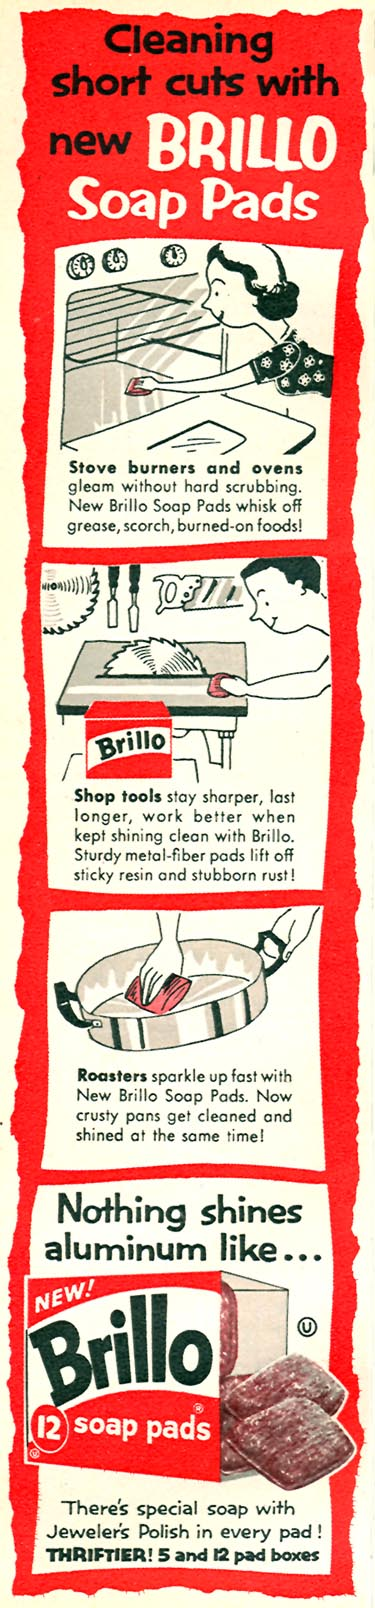 BRILLO SOAP PADS FAMILY CIRCLE 11/01/1957 p. 68